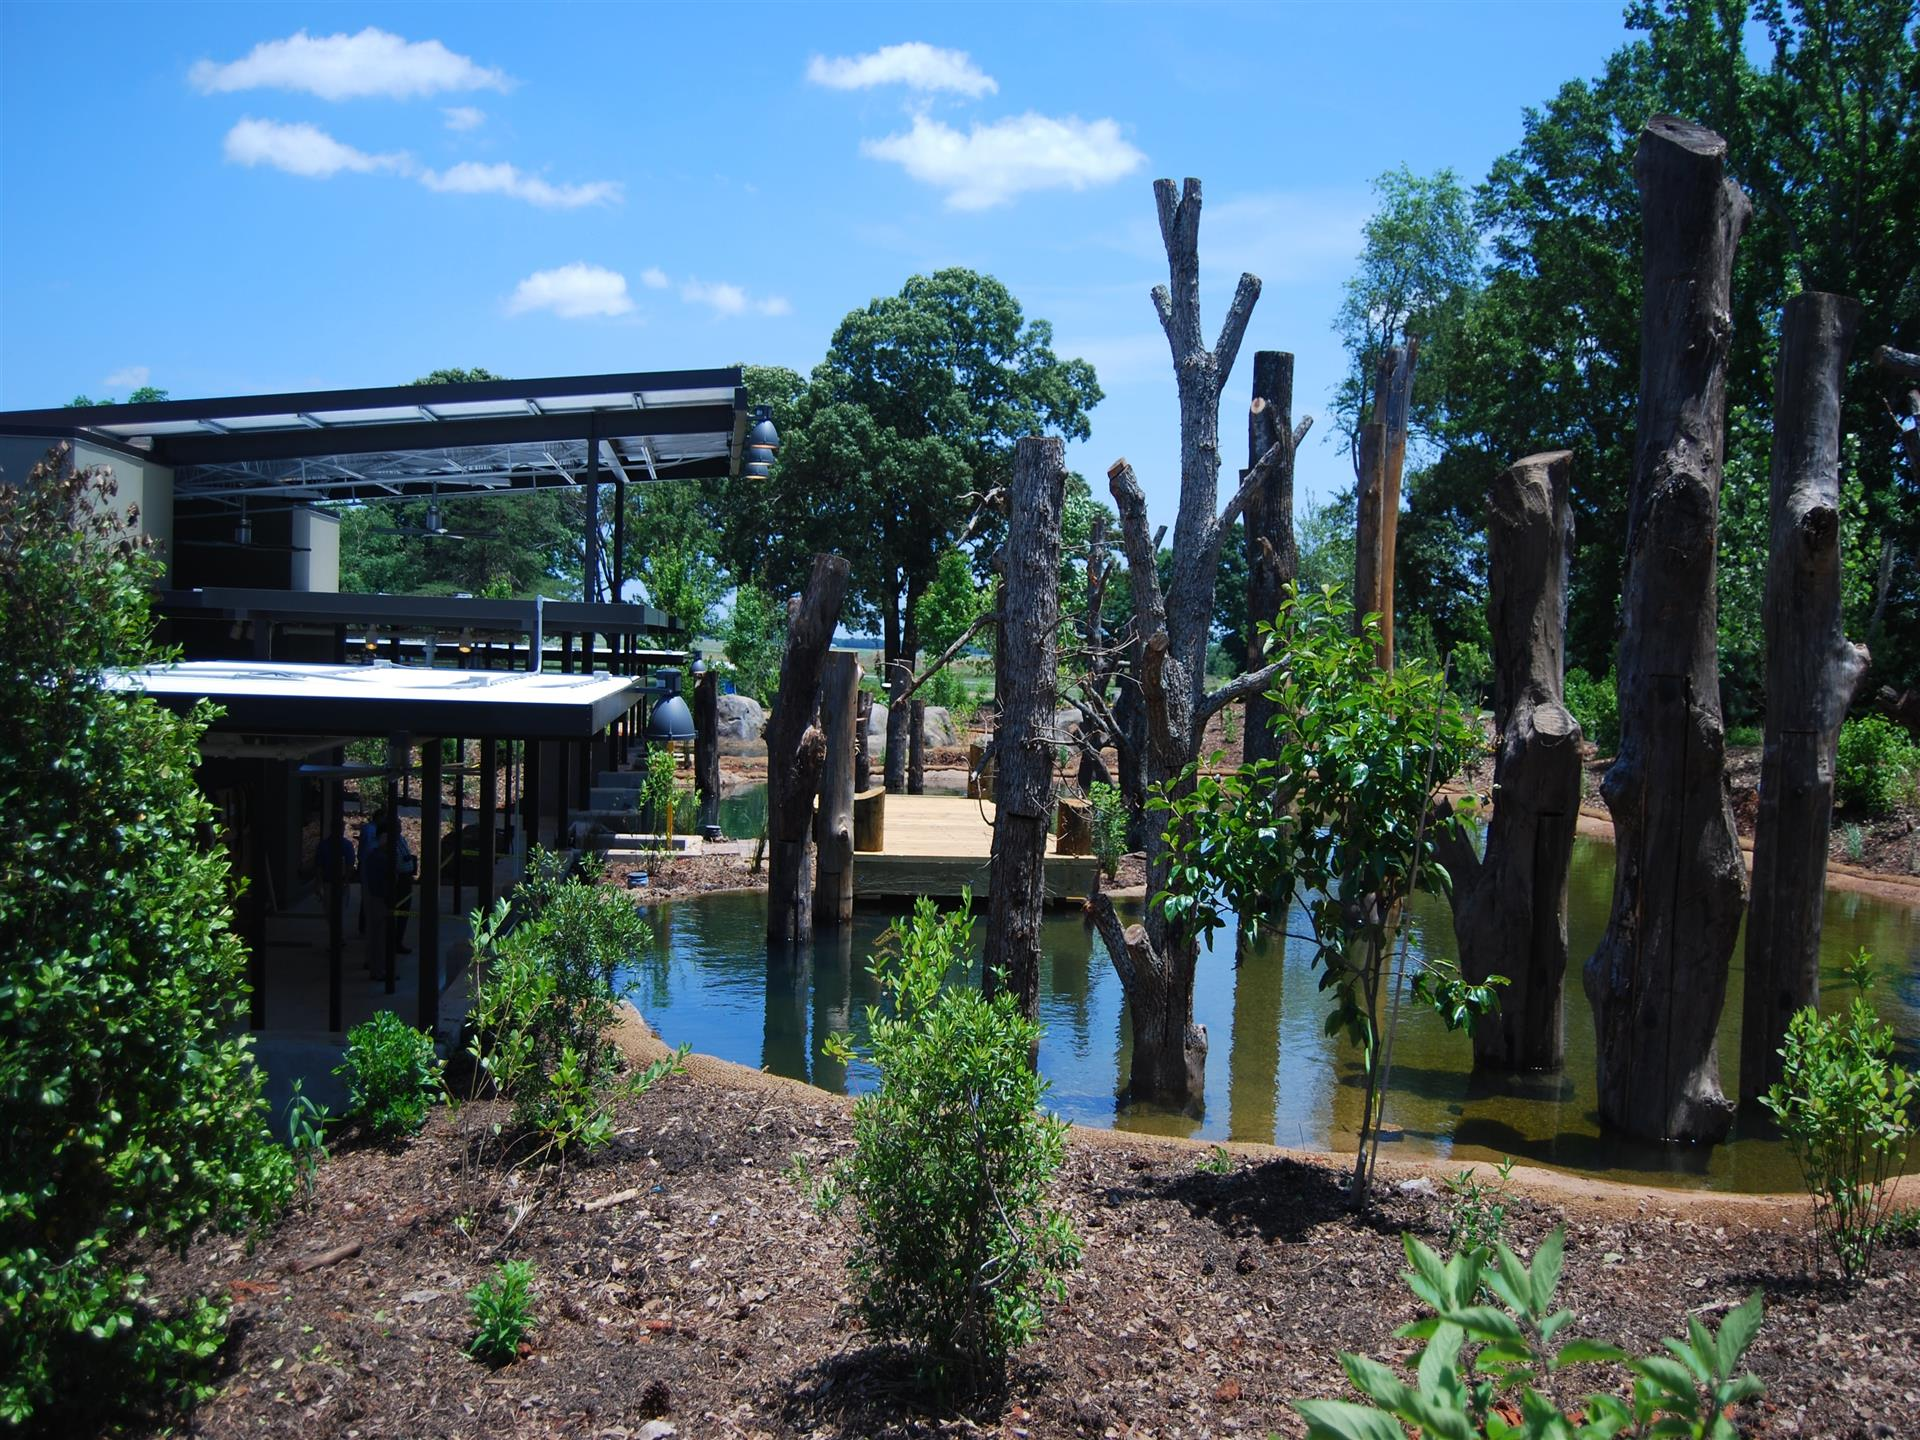 View of the pond in the front of the building with trees in the pond